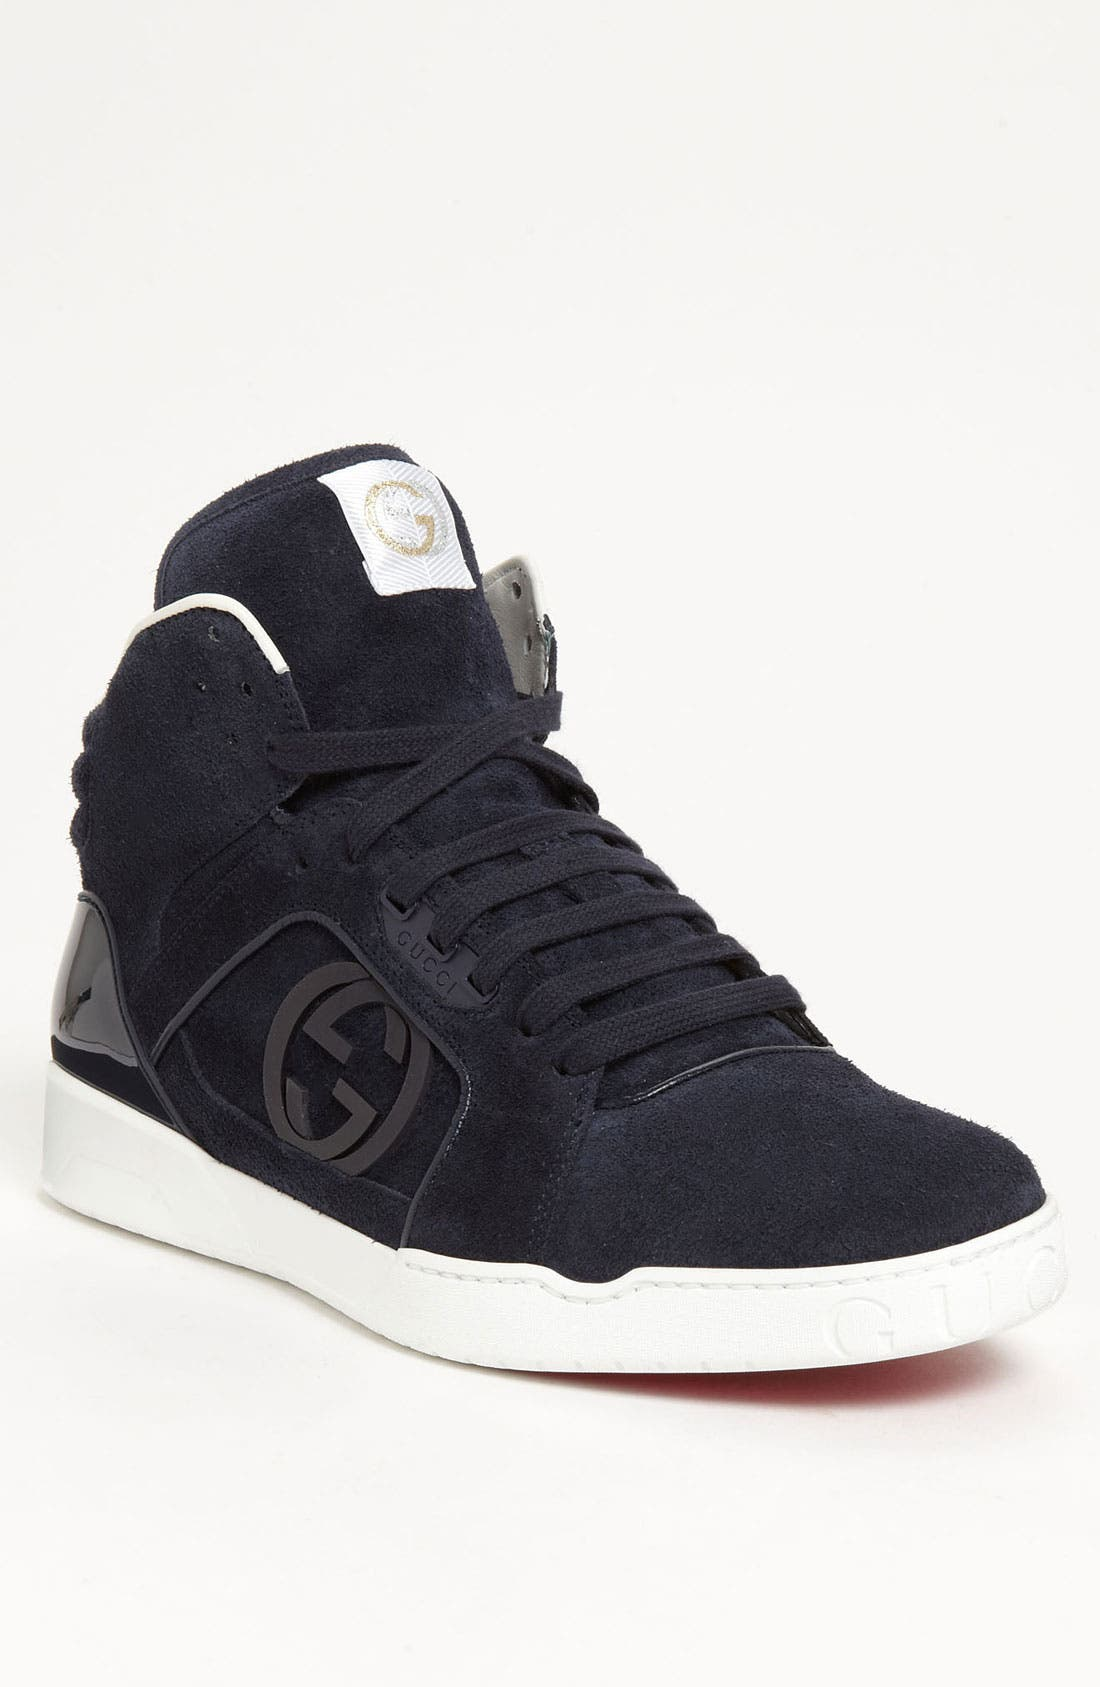 Alternate Image 1 Selected - Gucci 'Rebound Mid' Sneaker (Men)